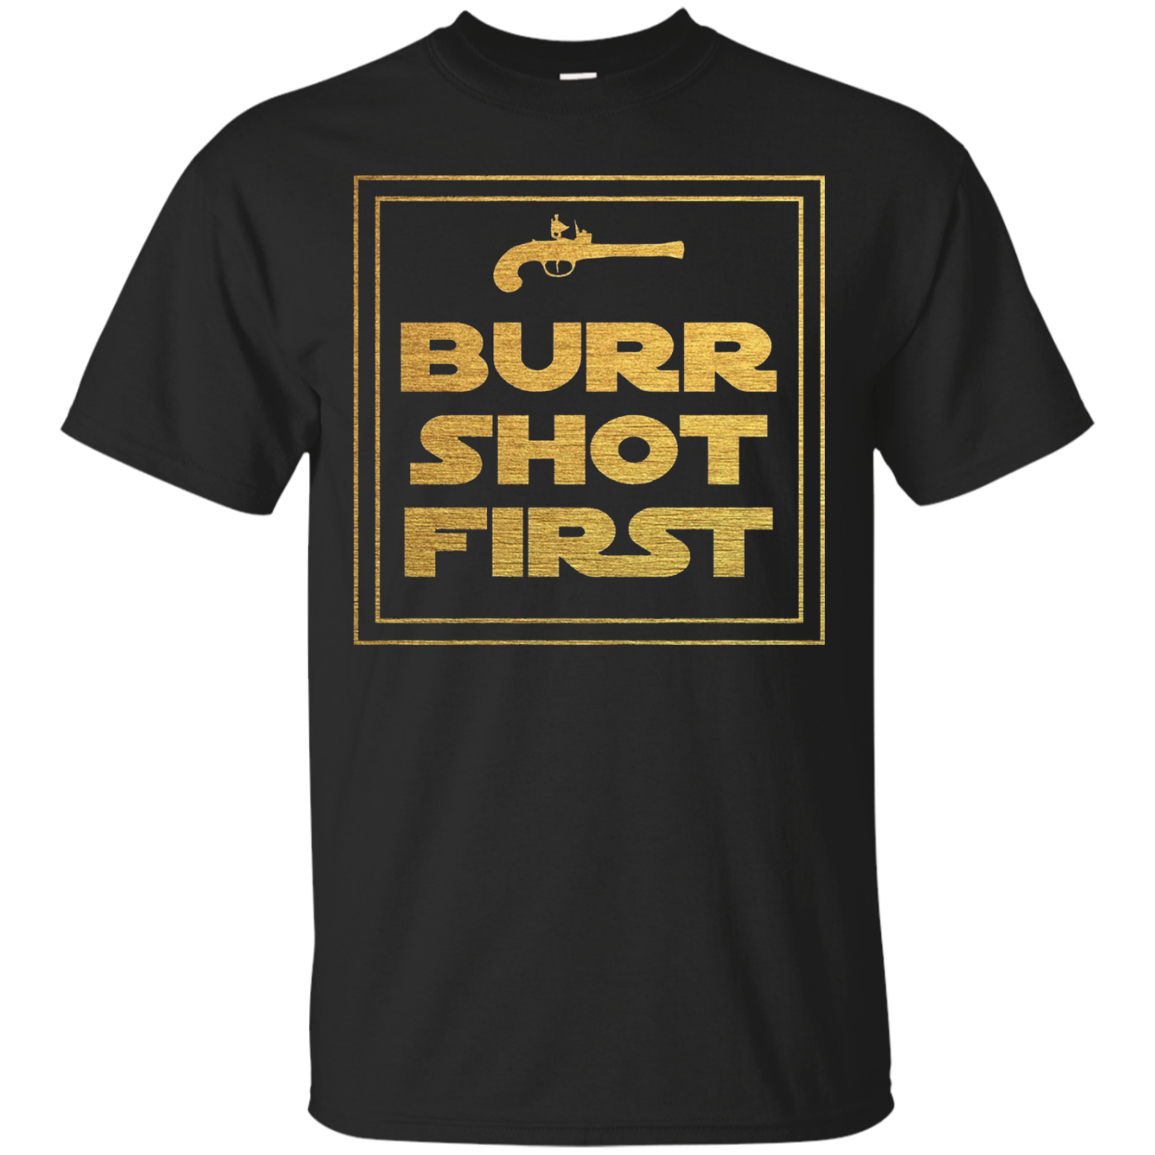 Burr shot first t shirt